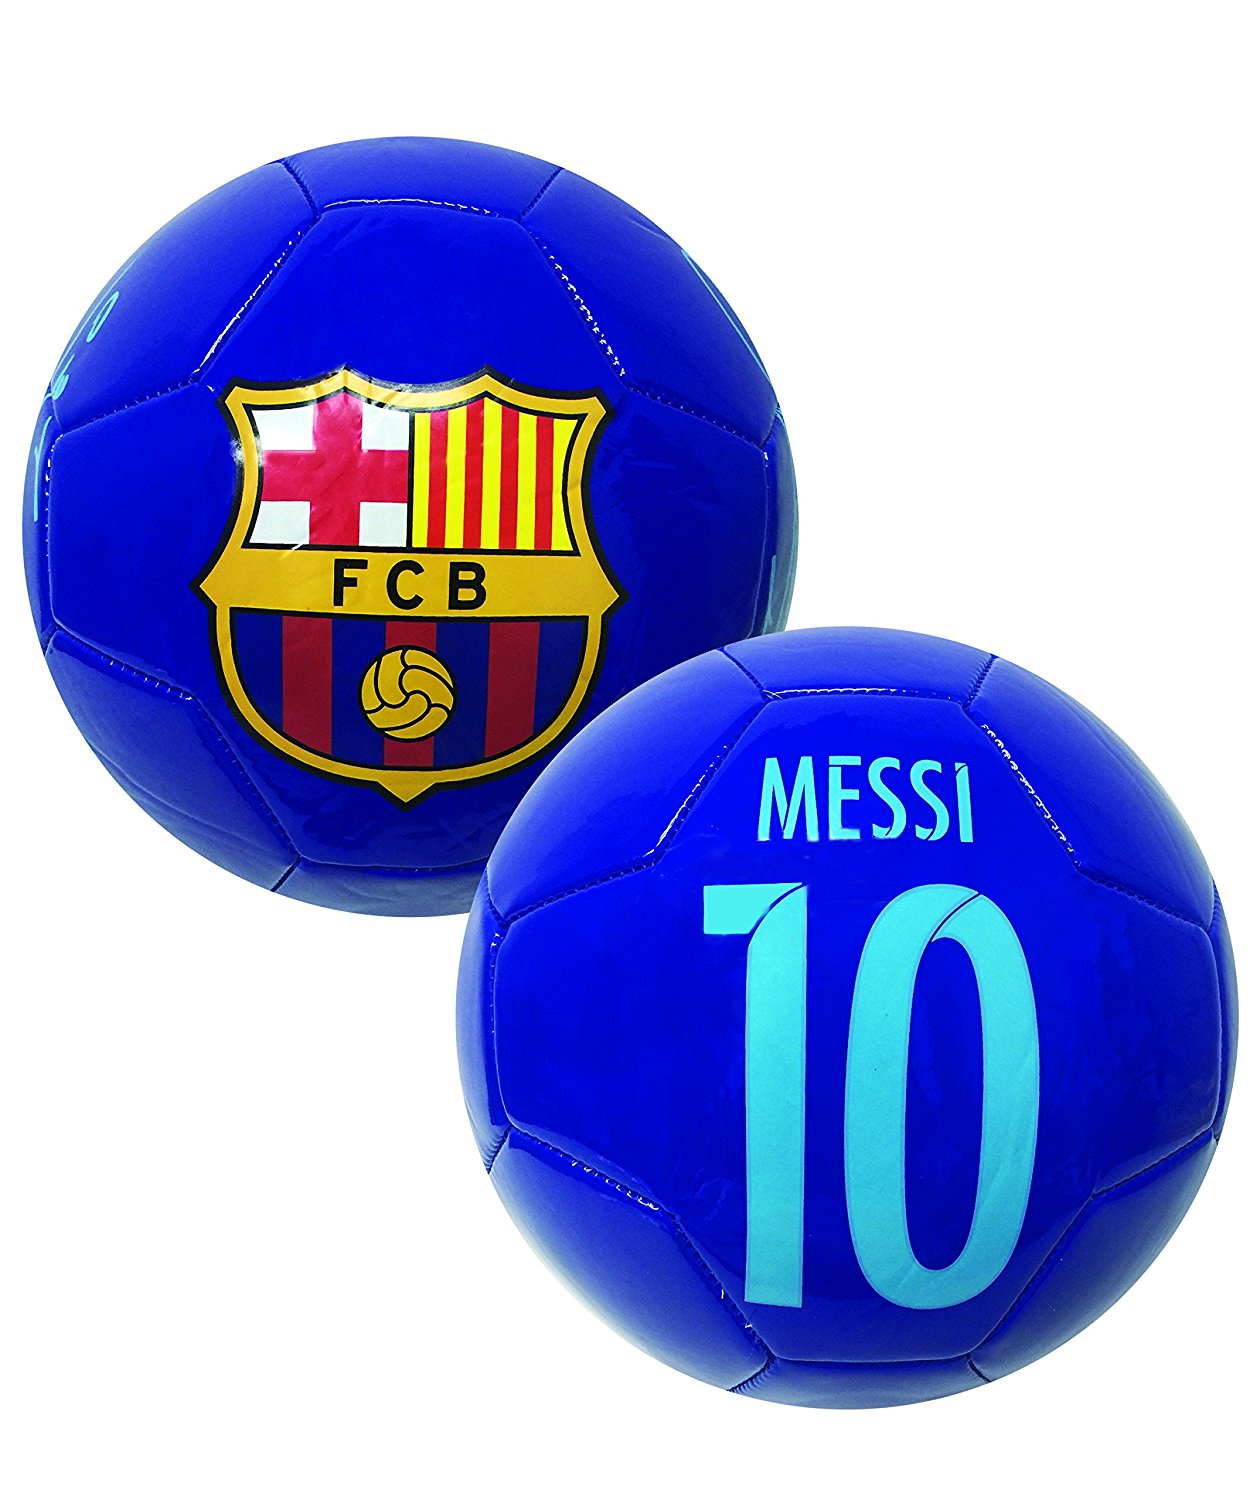 Soccer Ball With the signature of Barcelona Players included the best Soccer Player of the world FC Barcelona Players Signature Soccer Ball LEO MESSI !! Size #2 and Size #4 Pink Color